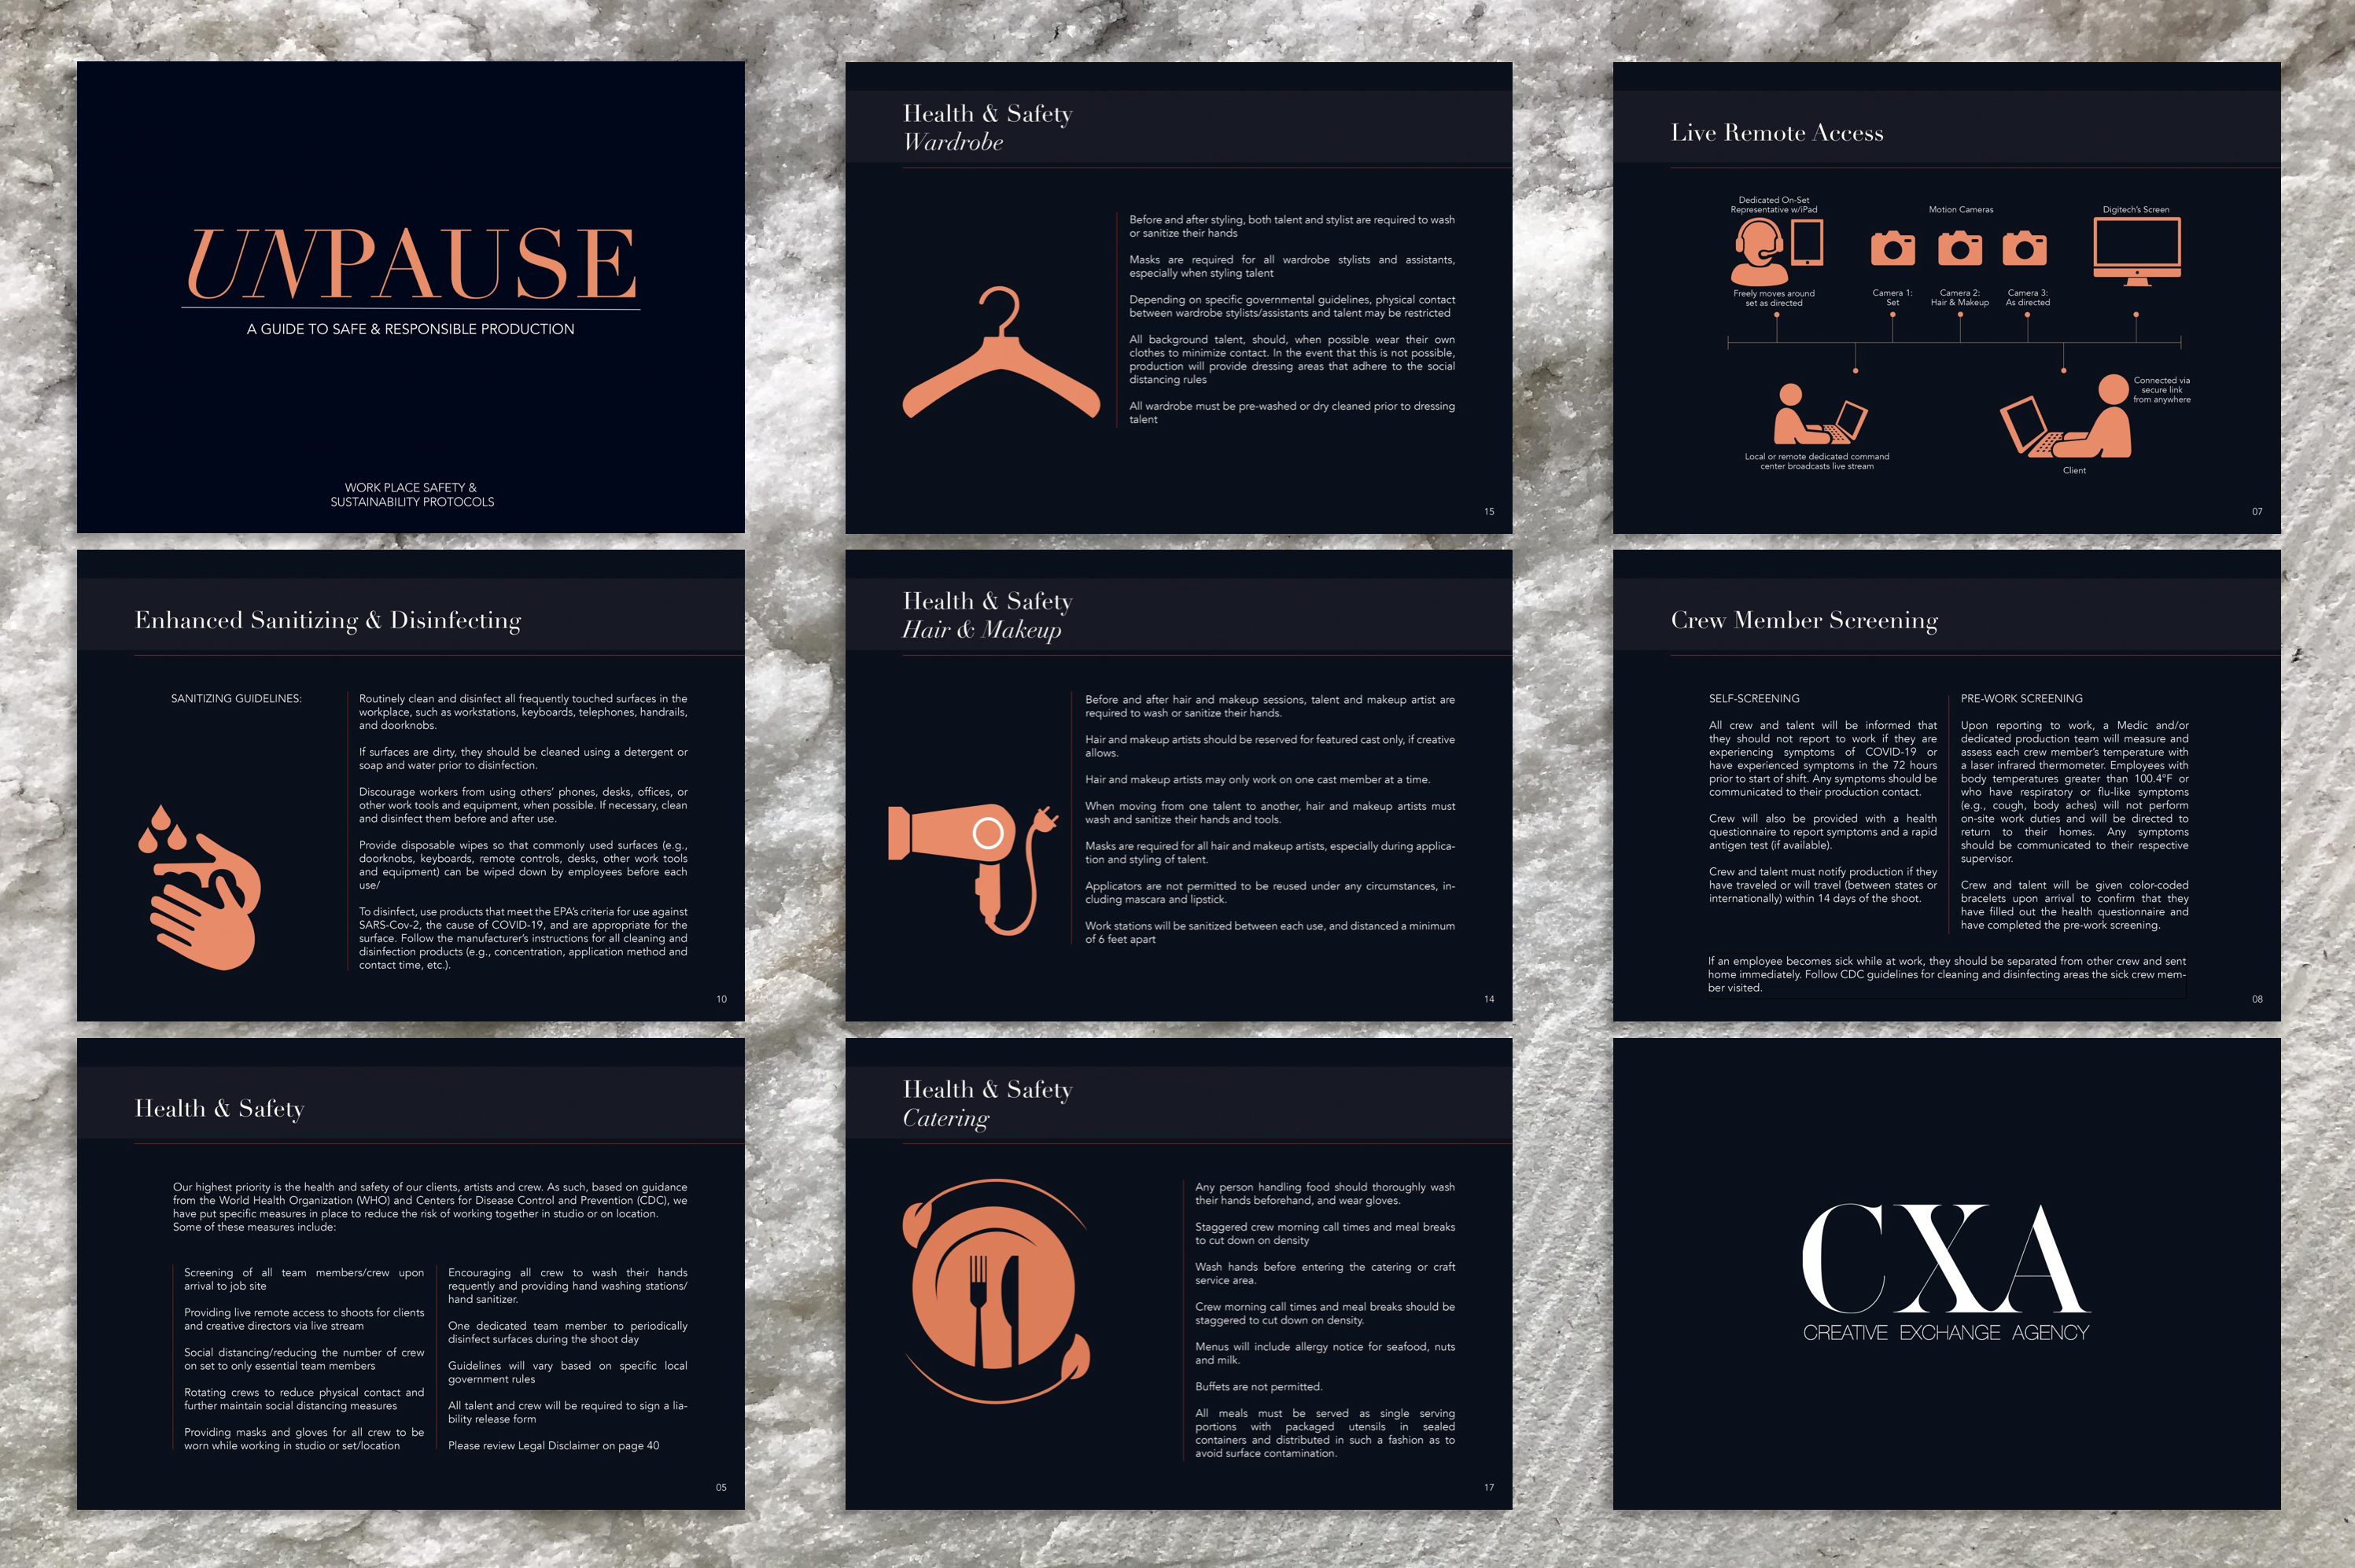 CXA Agency Releases Guide to Safe & Responsible Shoot Production